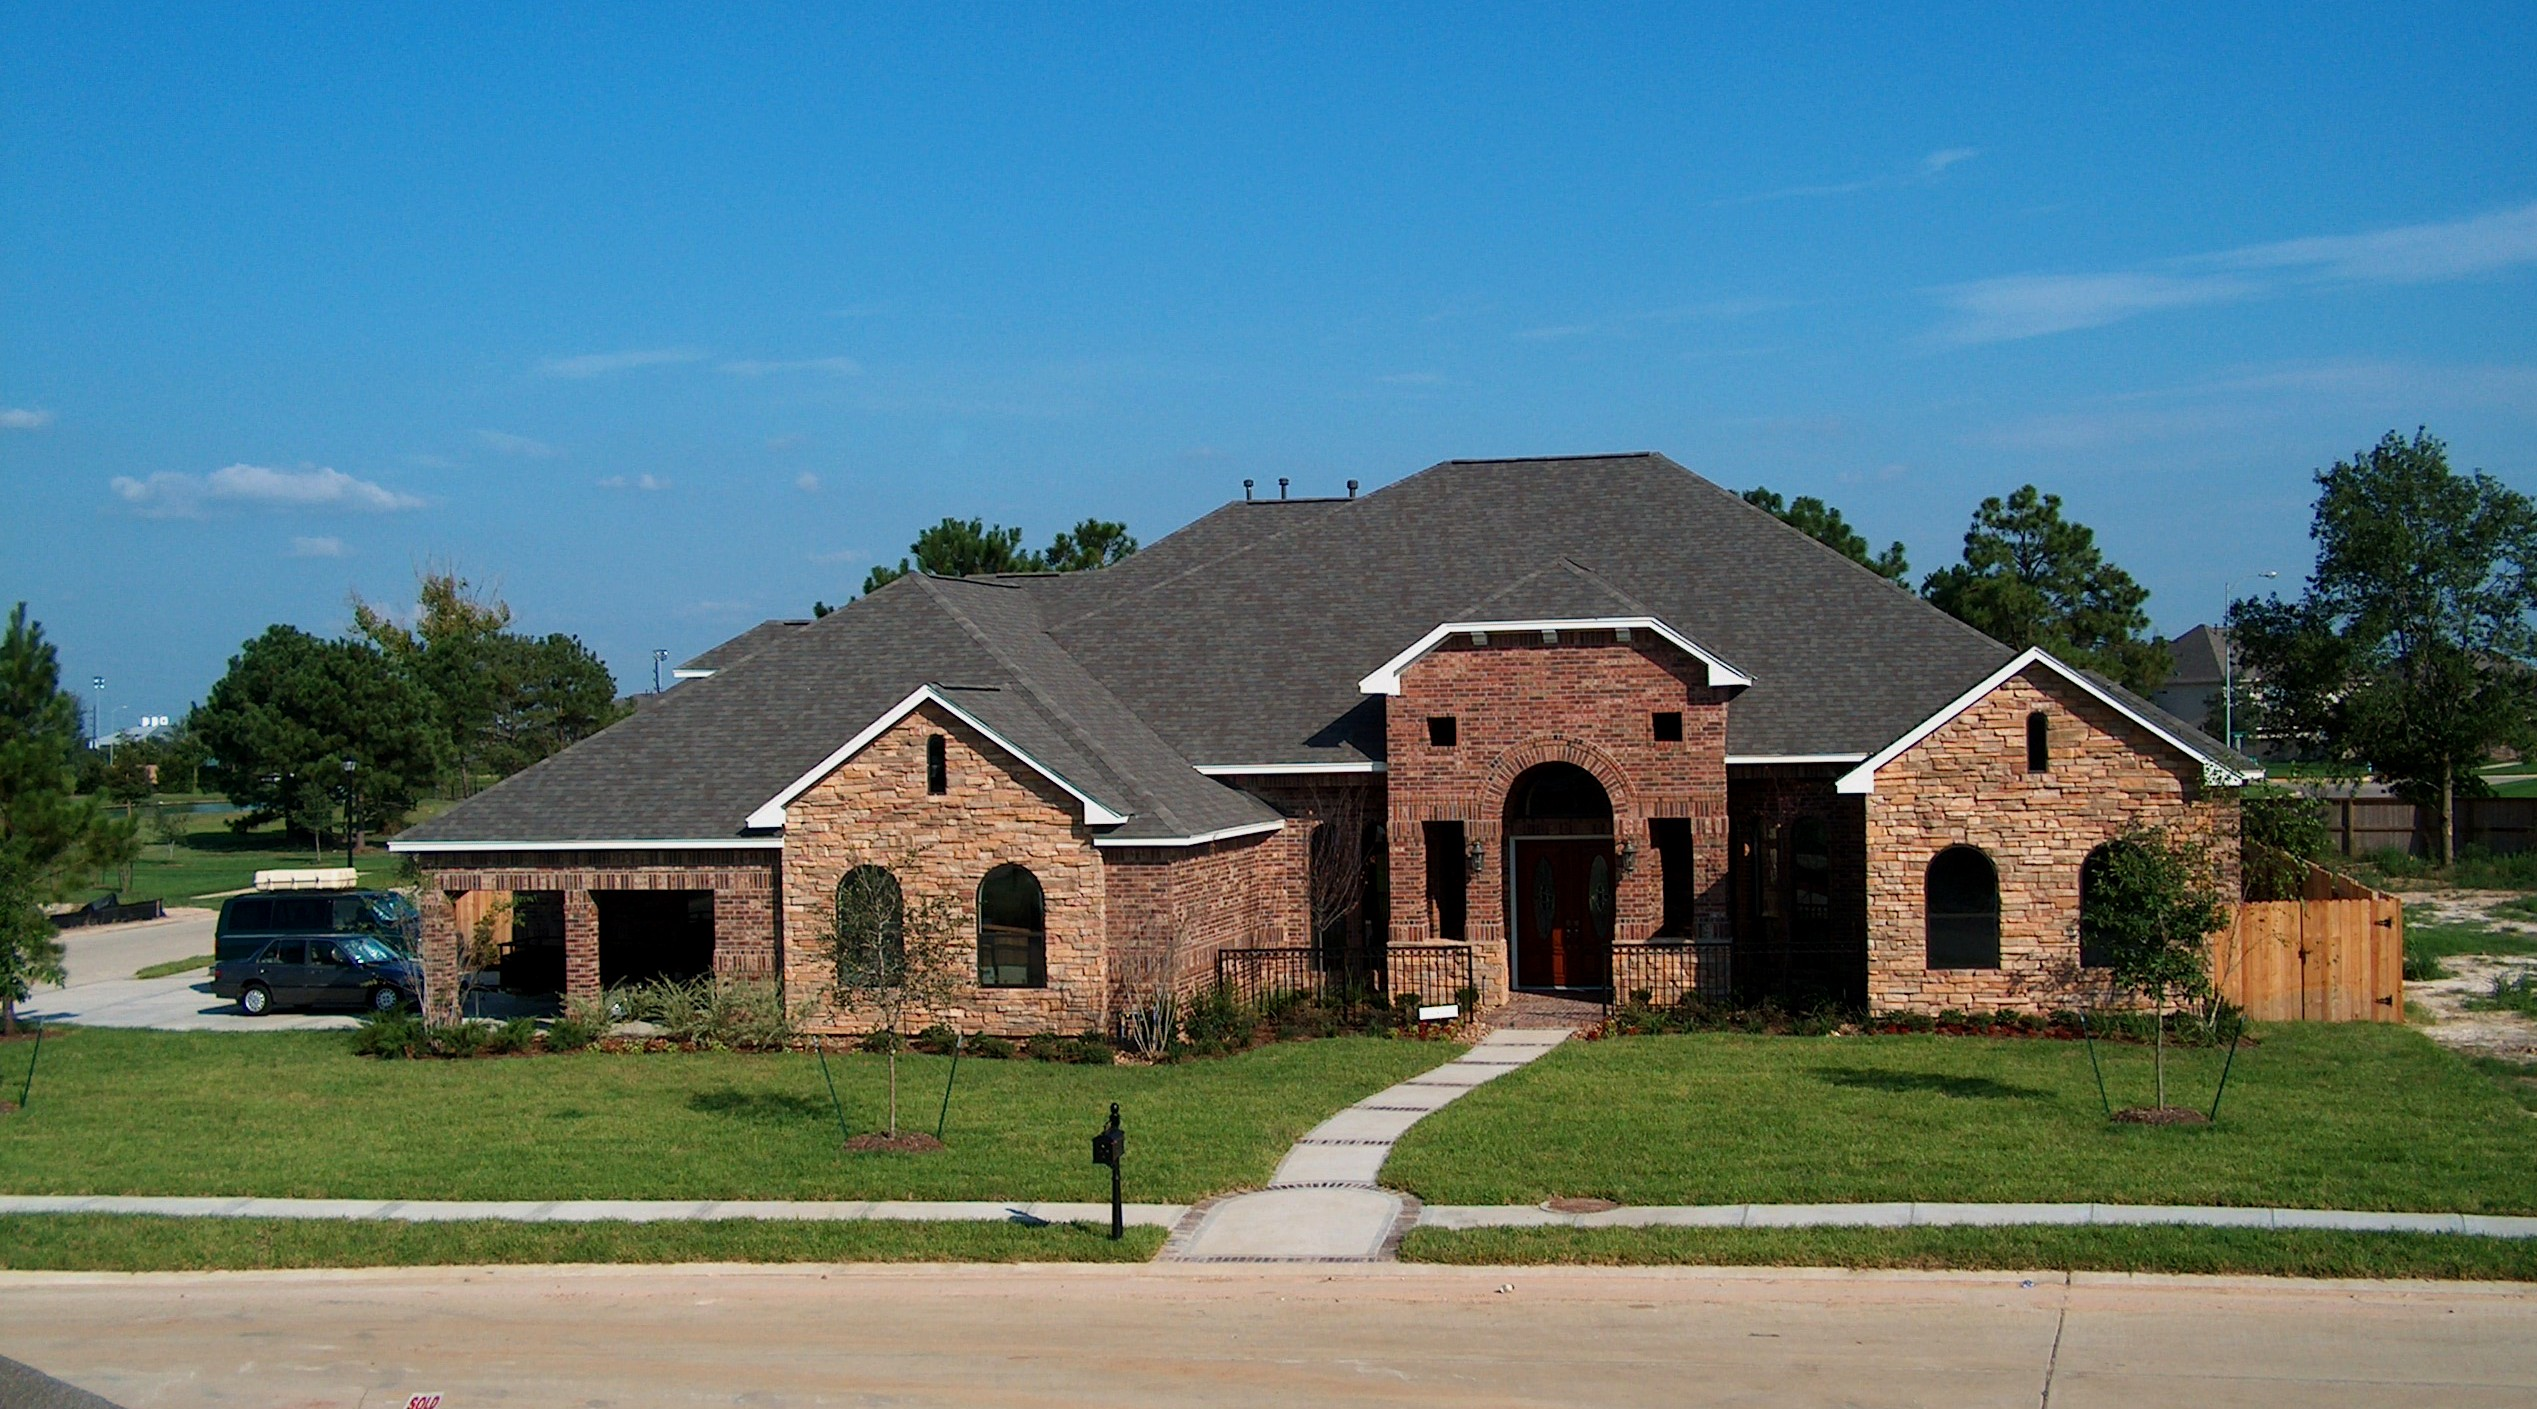 our new house in texas - New House Pic